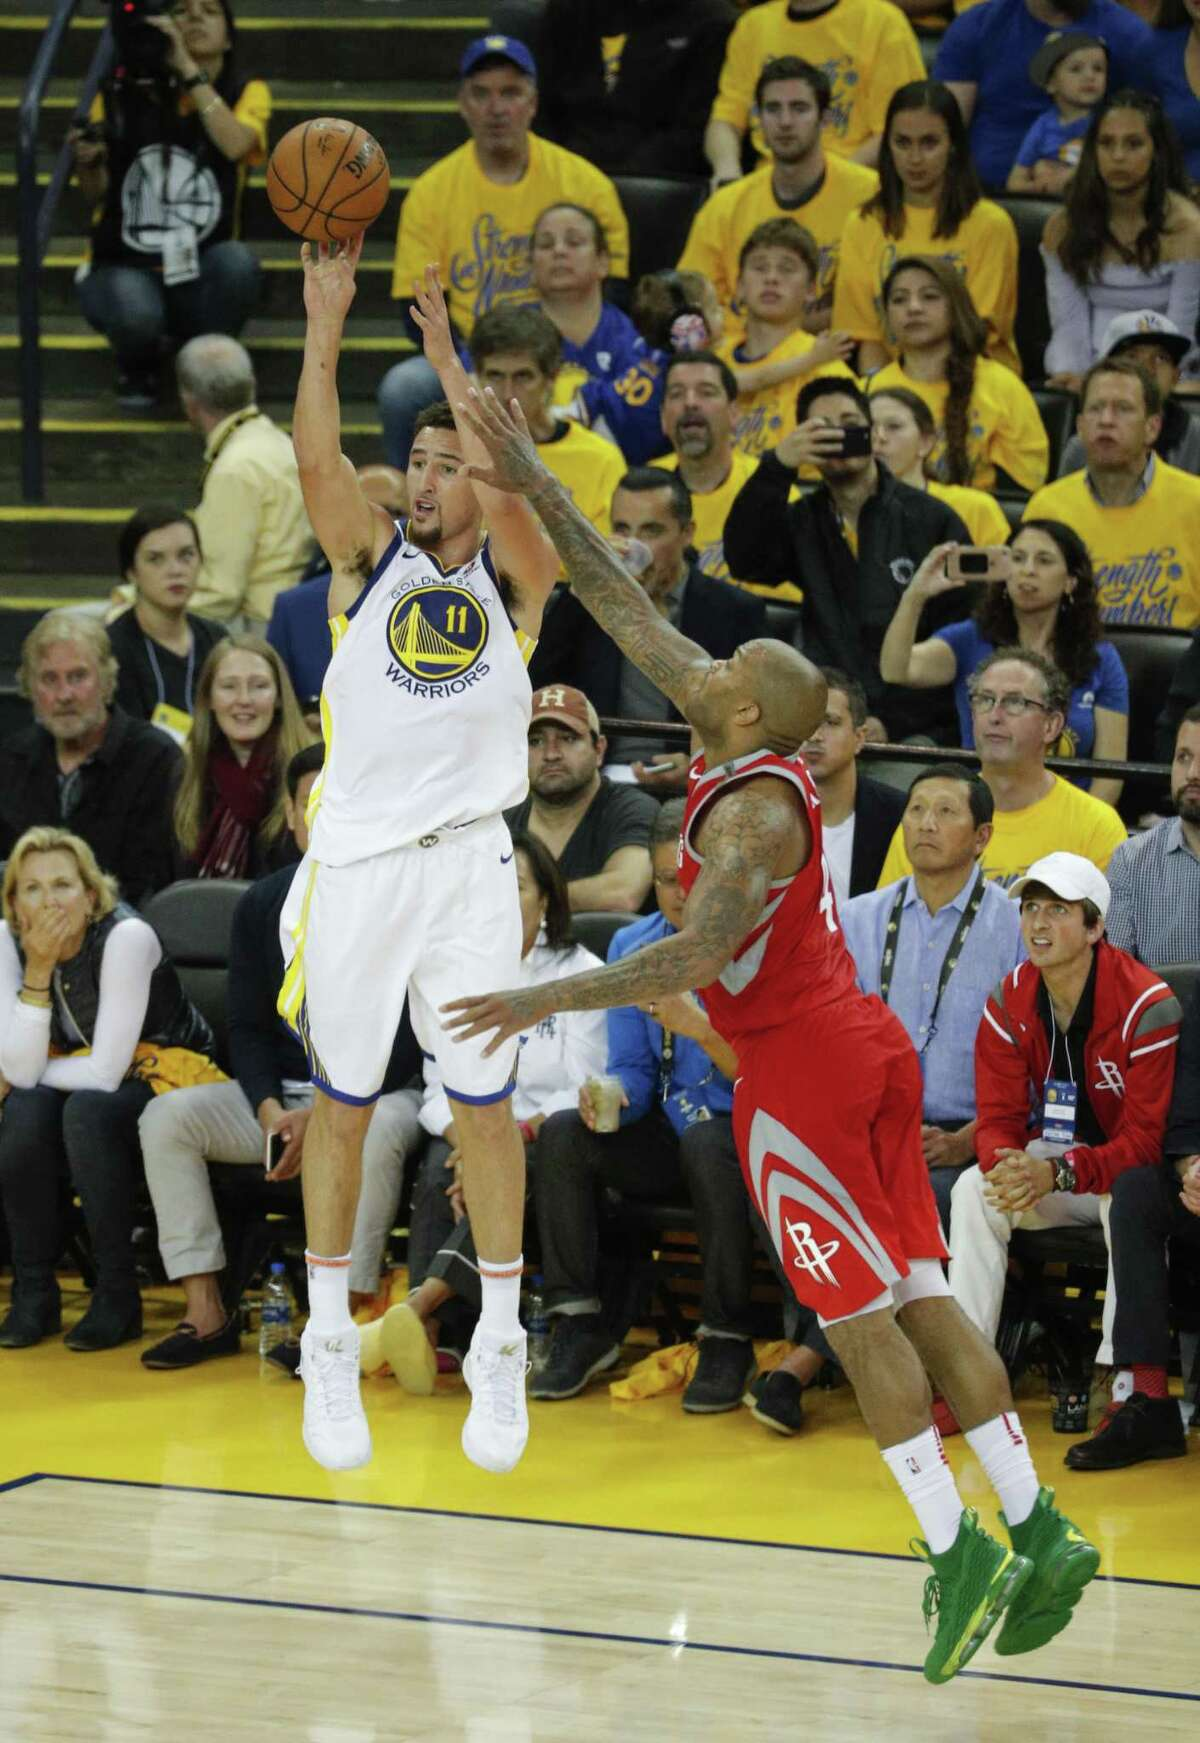 Golden State Warriors' Klay Thompson shoots a three-pointer over Houston Rockets' PJ Tucker in the third quarter during game 6 of the Western Conference Finals between the Golden State Warriors and the Houston Rockets at Oracle Arena on Saturday, May 26, 2018 in Oakland, Calif.